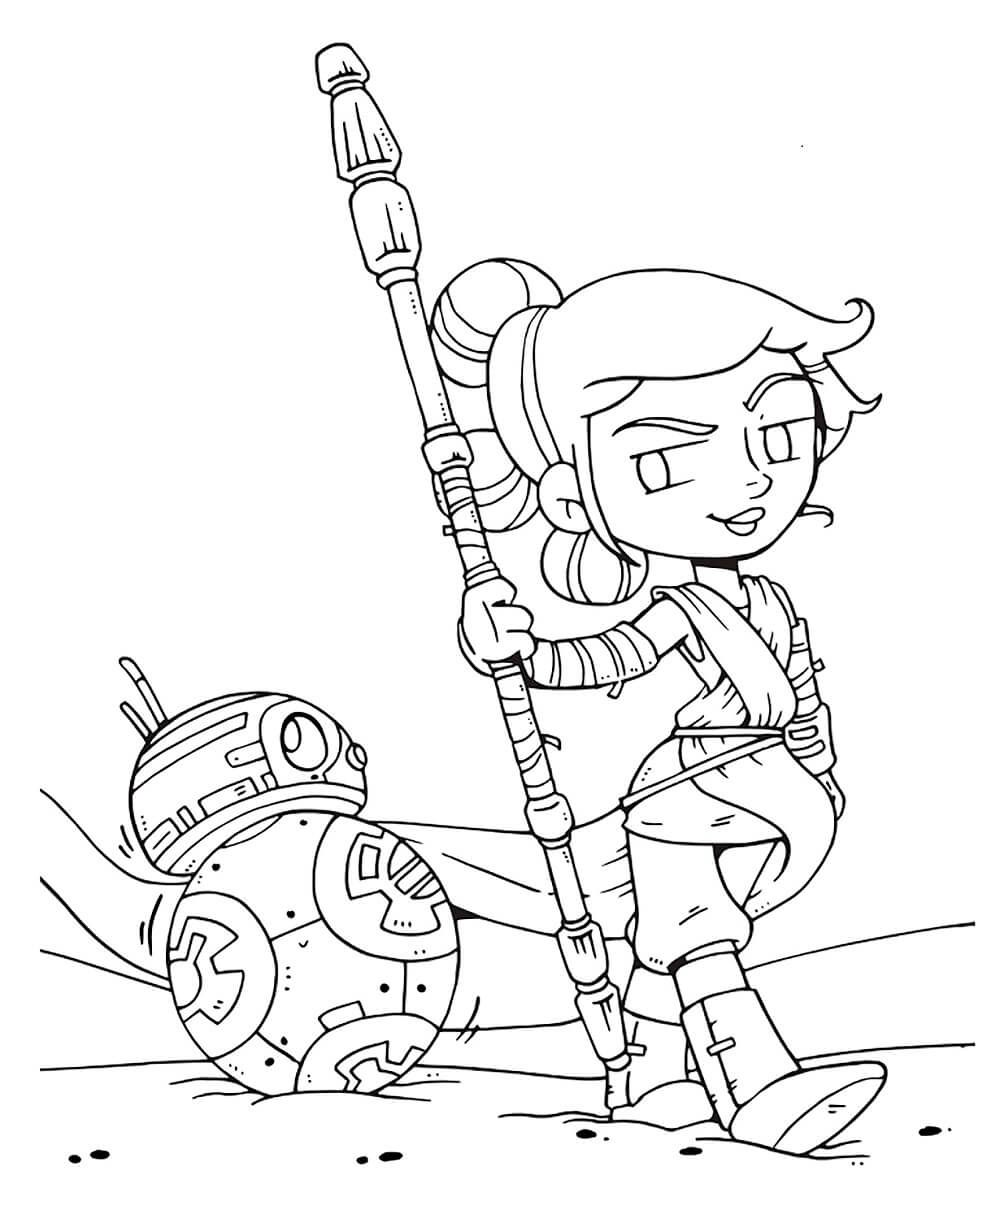 Star Wars Coloring Pages Ideas For Kids Star Wars Colors Lego